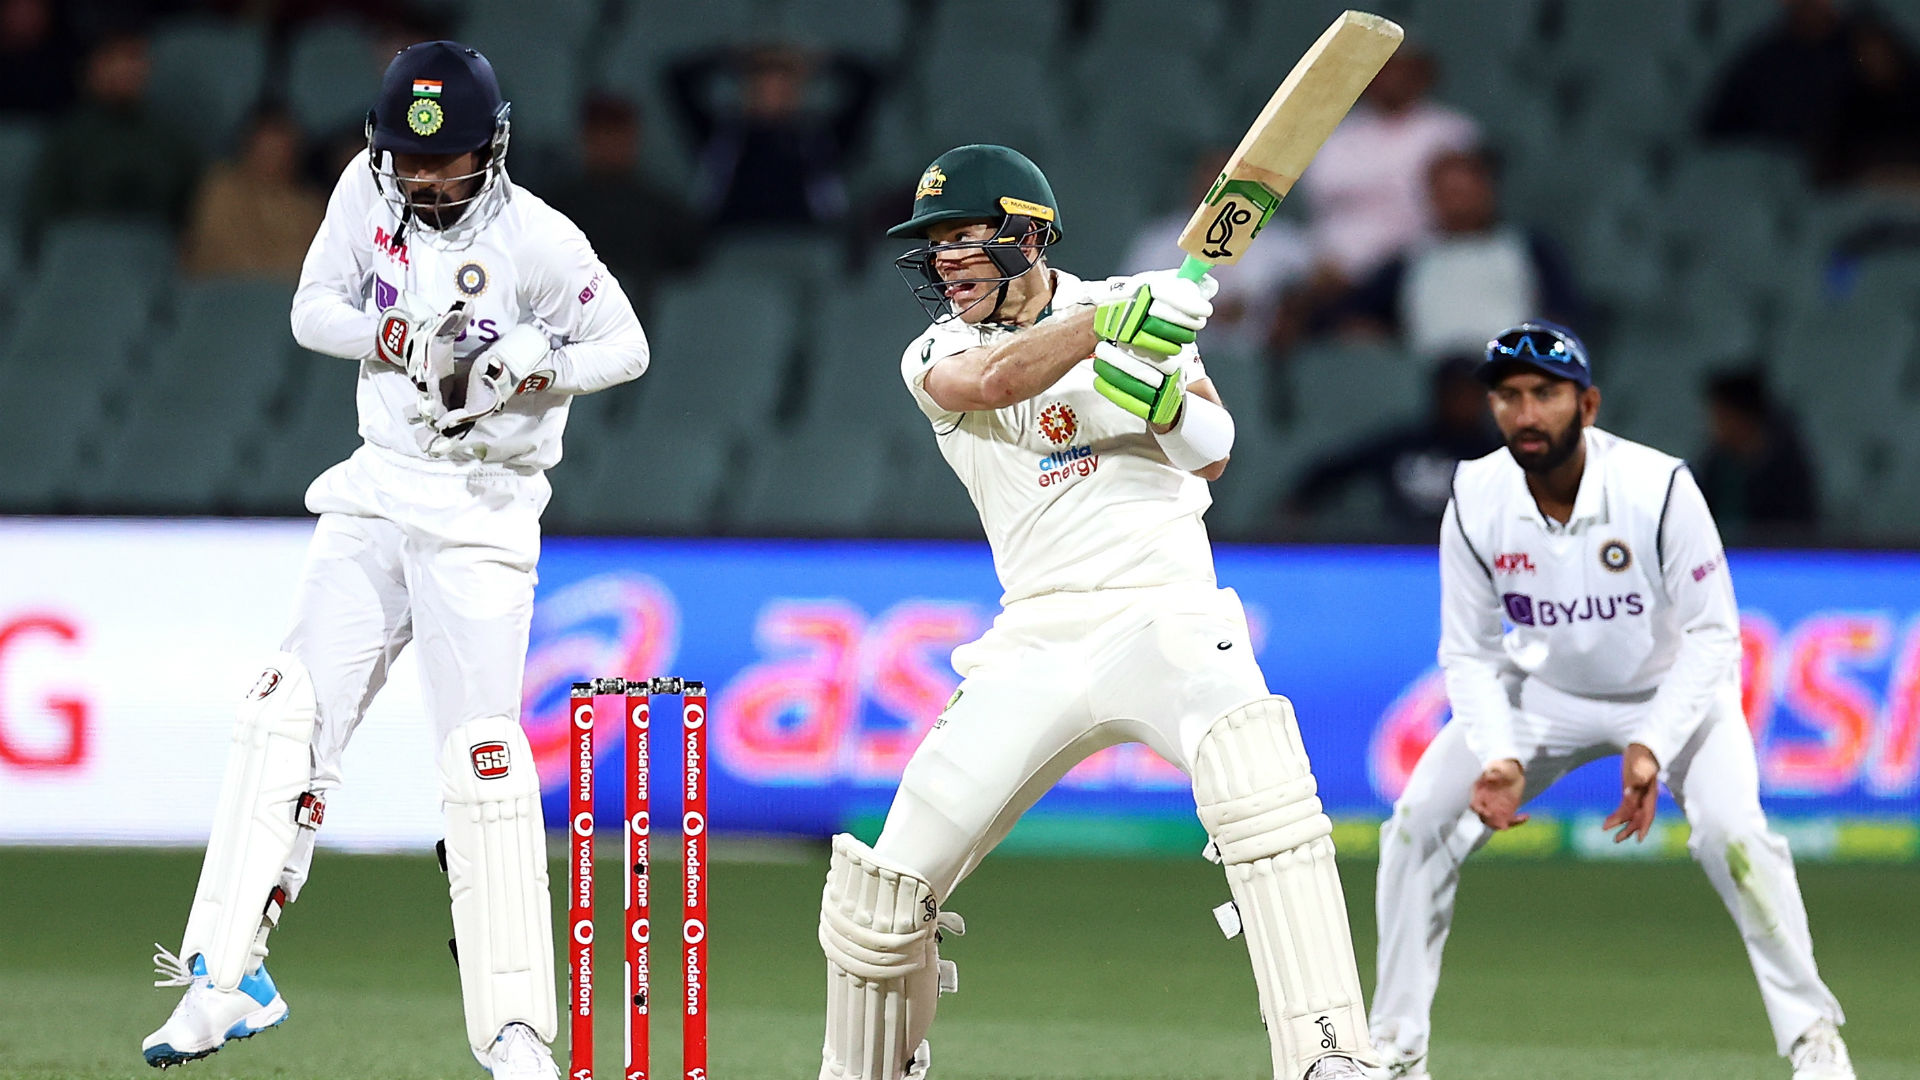 Ashwin puts Australia in a spin but Paine hurts India's hopes in Adelaide